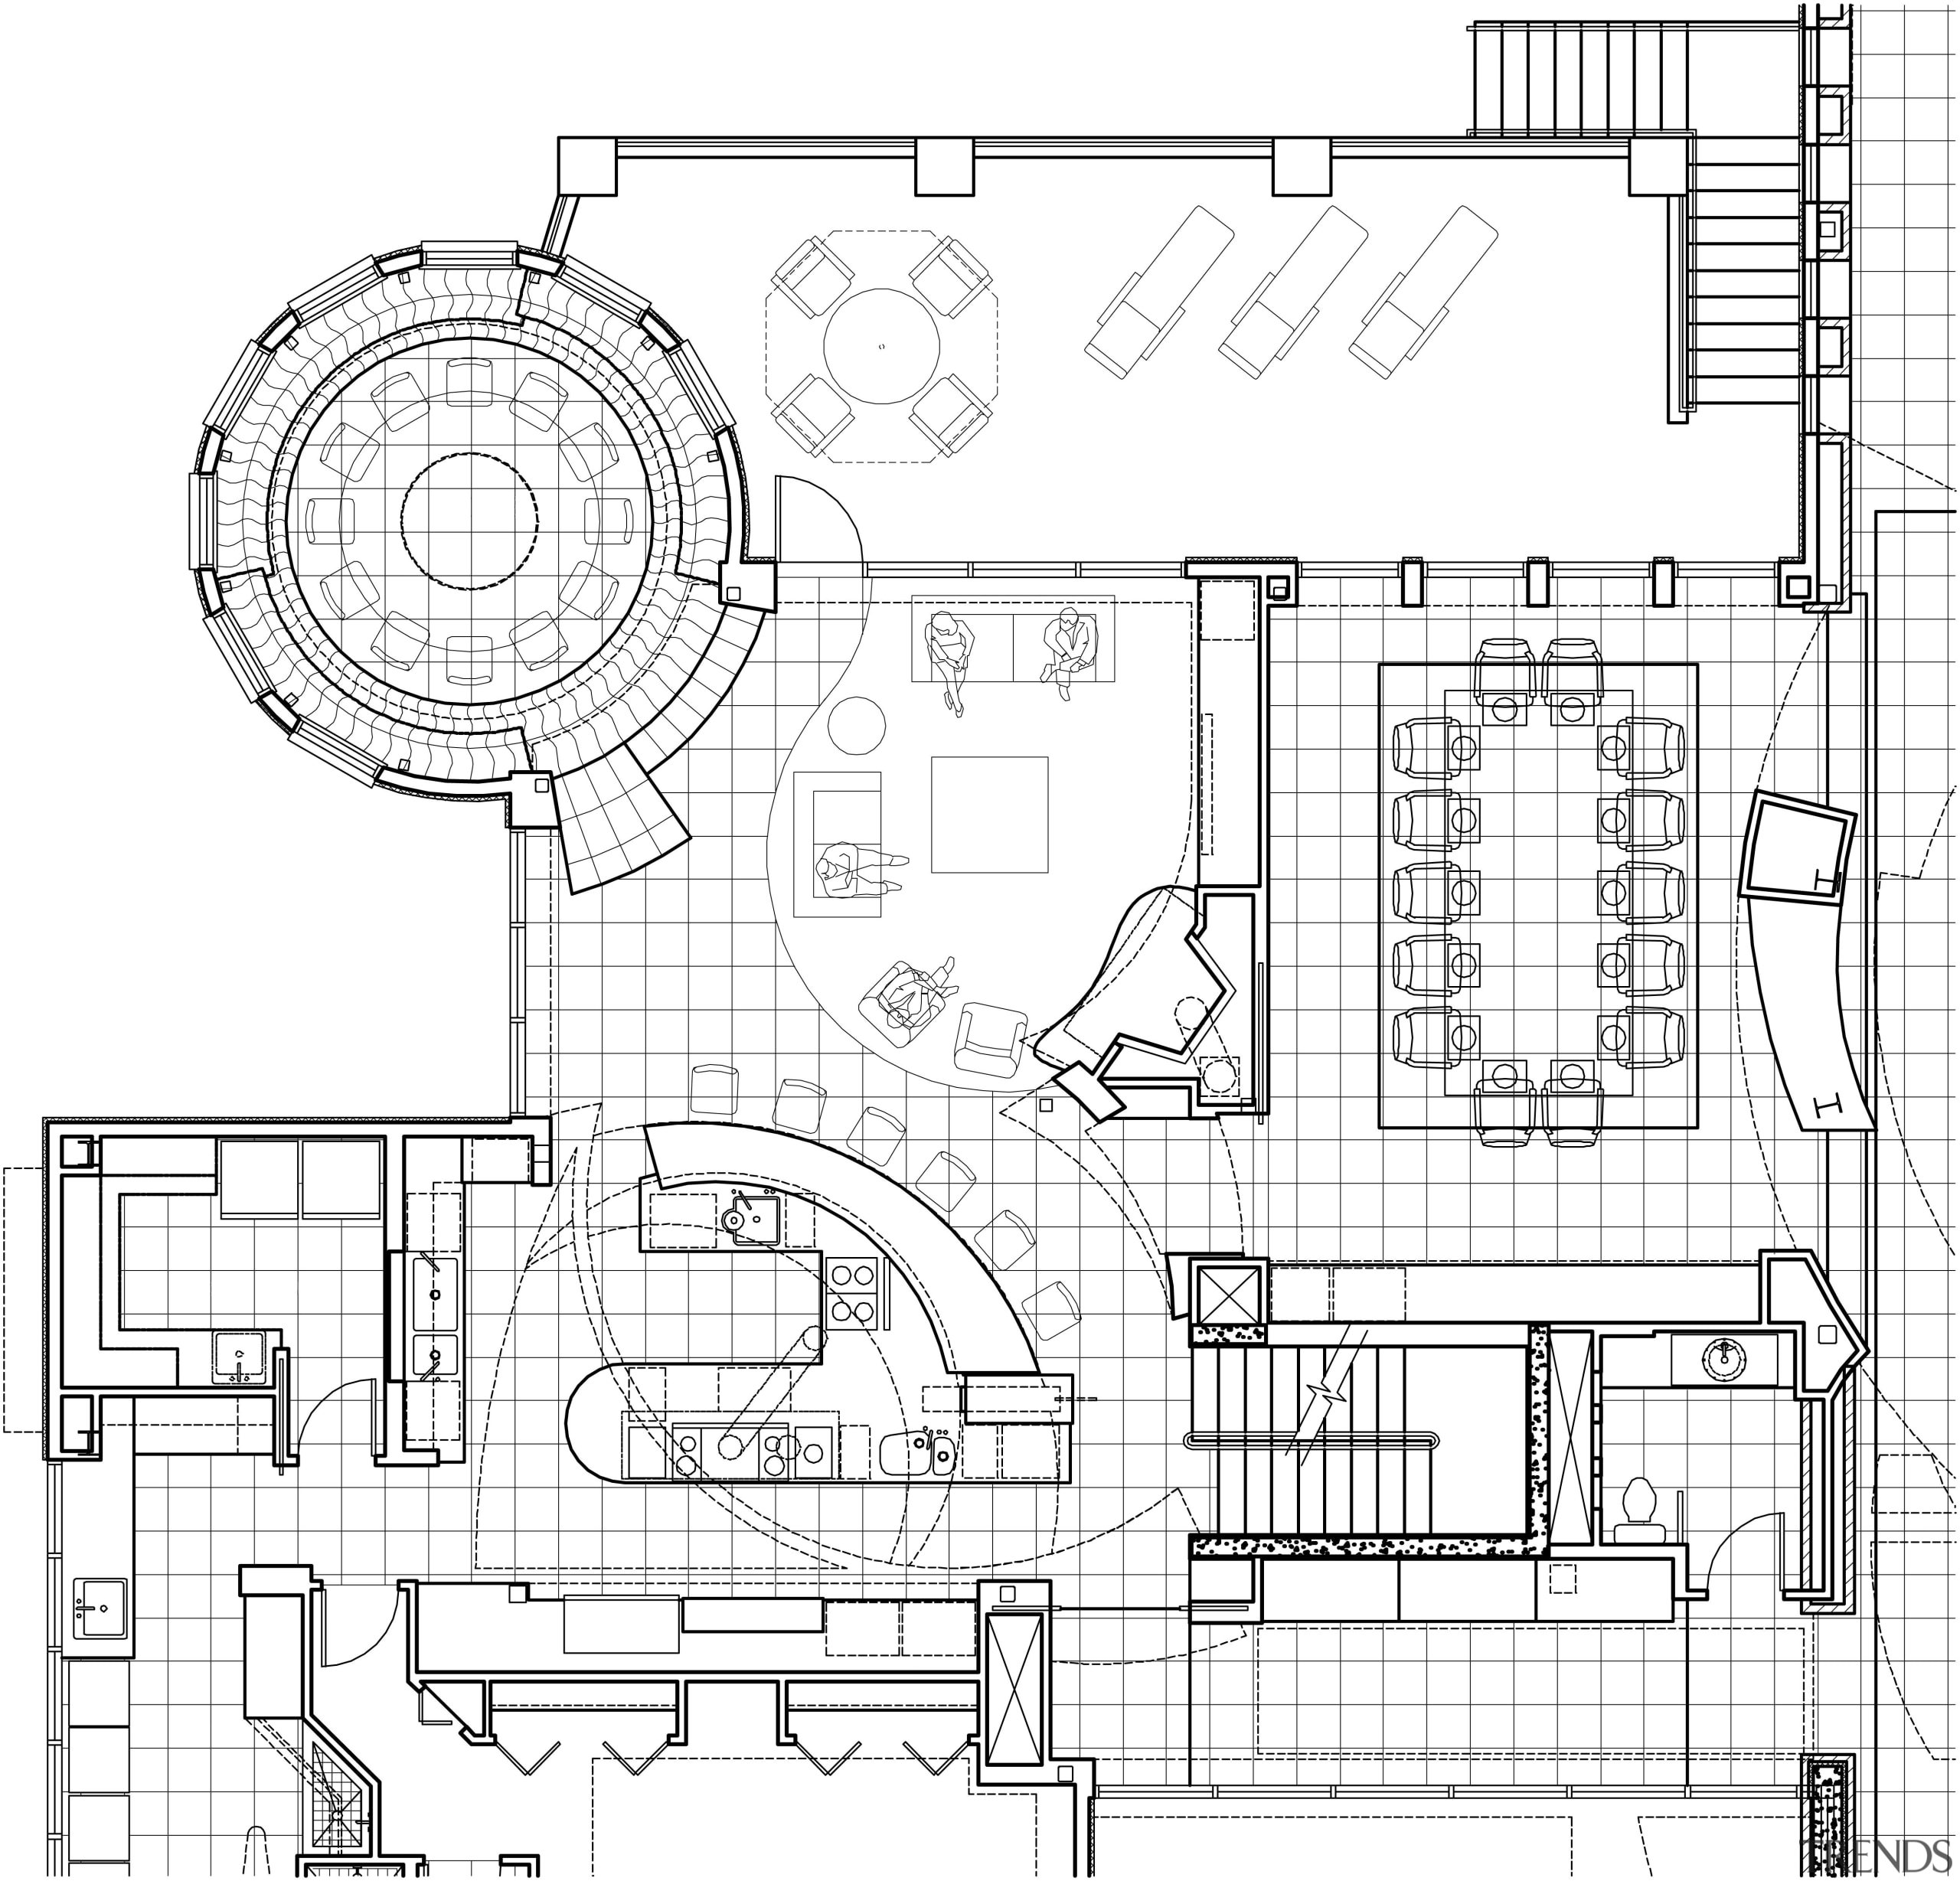 View of a kitchen architectural plans. - View area, artwork, black and white, design, diagram, drawing, engineering, floor plan, line, line art, plan, product, product design, technical drawing, white